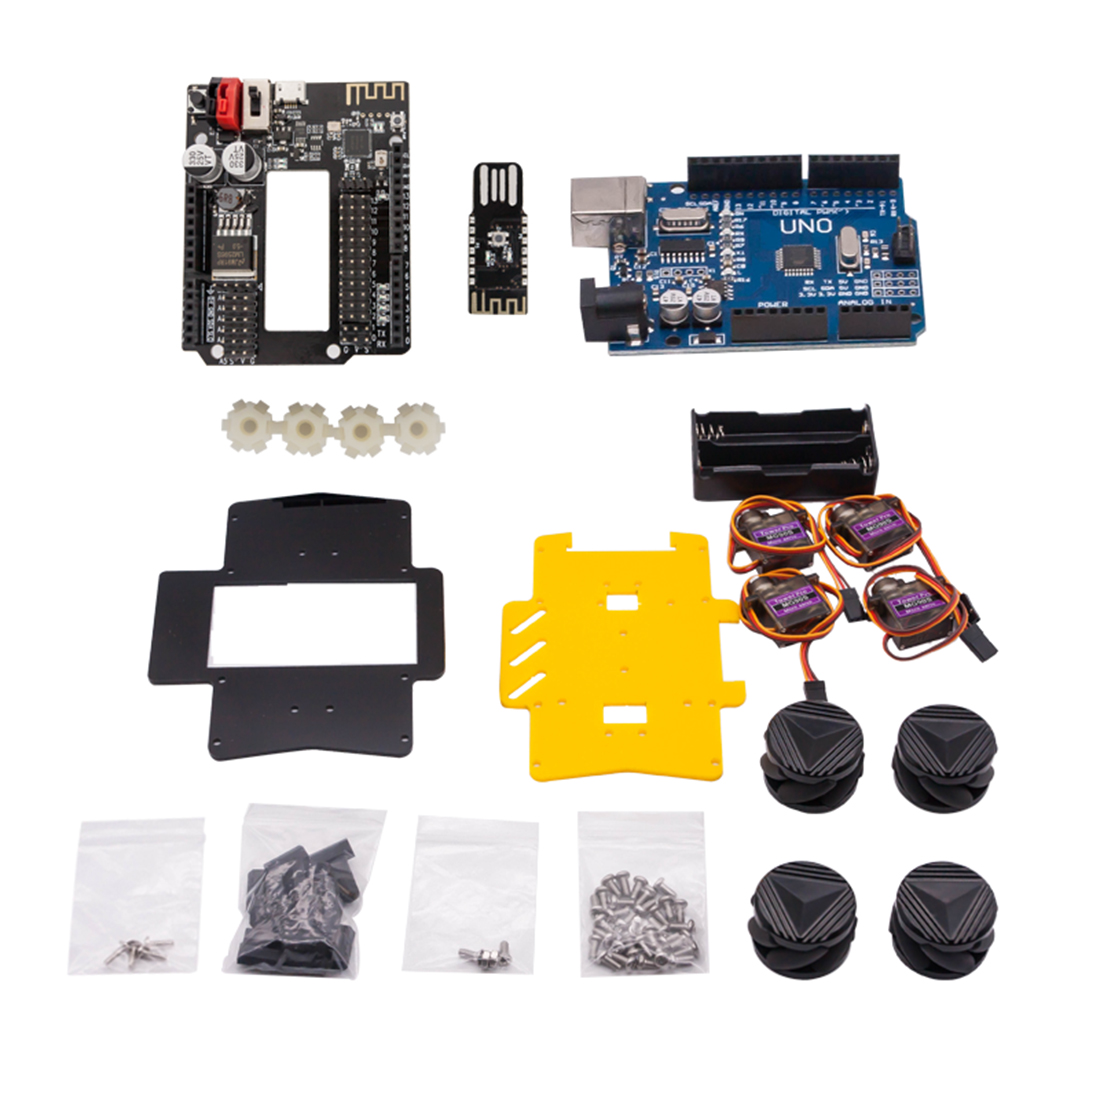 DIY Obstacle Avoidance Smart Programmable Robot Car Educational Learning Kit With Mecanum Wheels For Arduino UNO For Kid - Set C